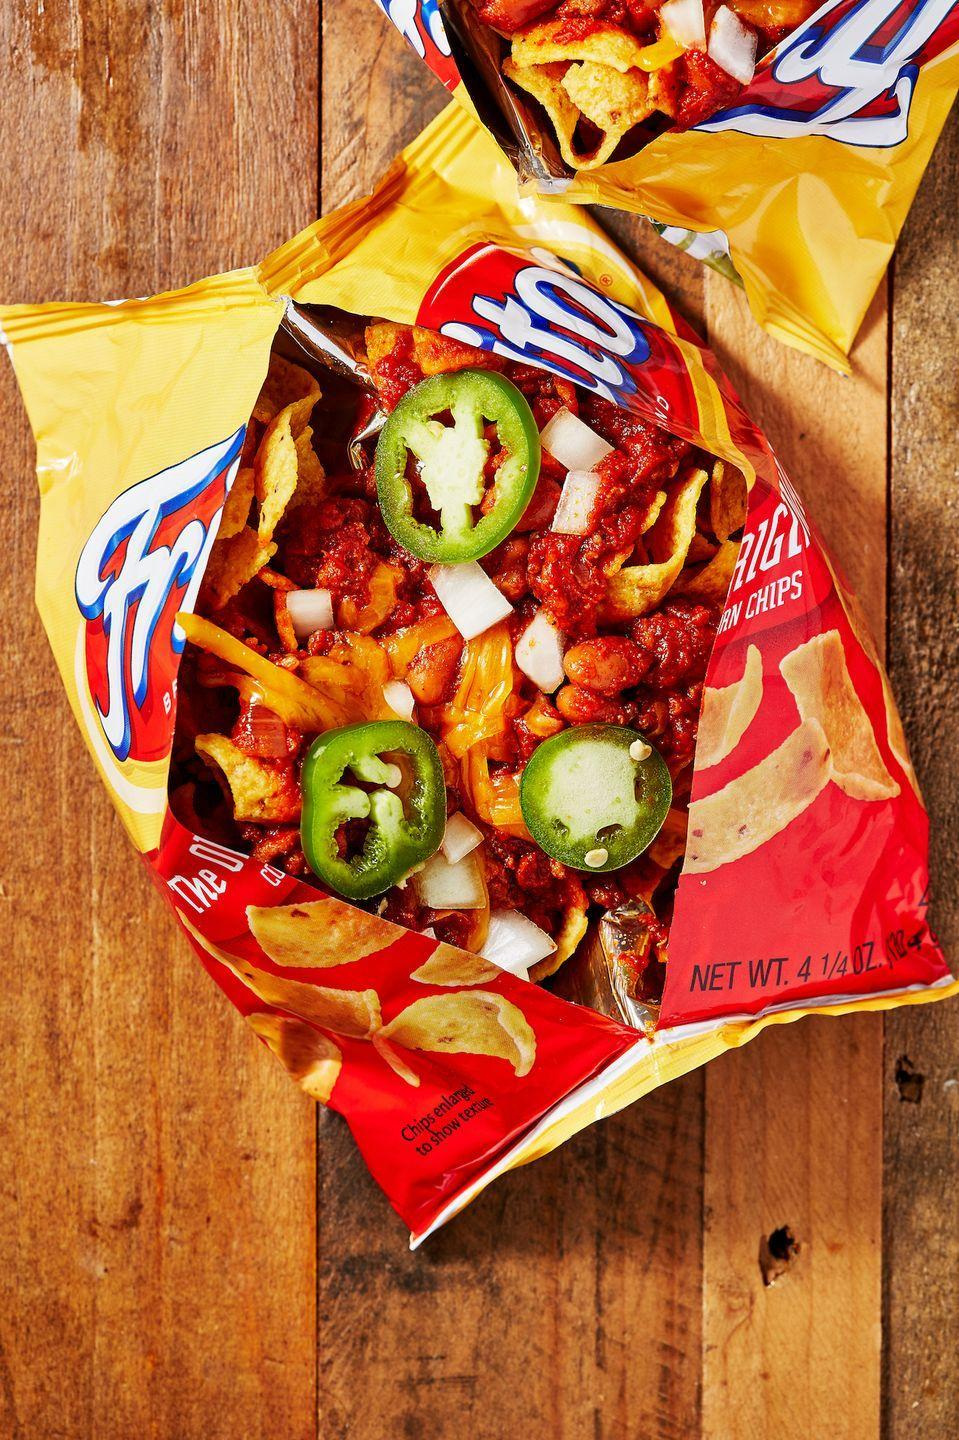 """<p>Did ya know? These were originally created in Mexico but popularized in the American Southwest.</p><p>Get the recipe from <a href=""""https://www.delish.com/cooking/recipe-ideas/a28914527/frito-pie-recipe/"""" rel=""""nofollow noopener"""" target=""""_blank"""" data-ylk=""""slk:Delish"""" class=""""link rapid-noclick-resp"""">Delish</a>.</p>"""